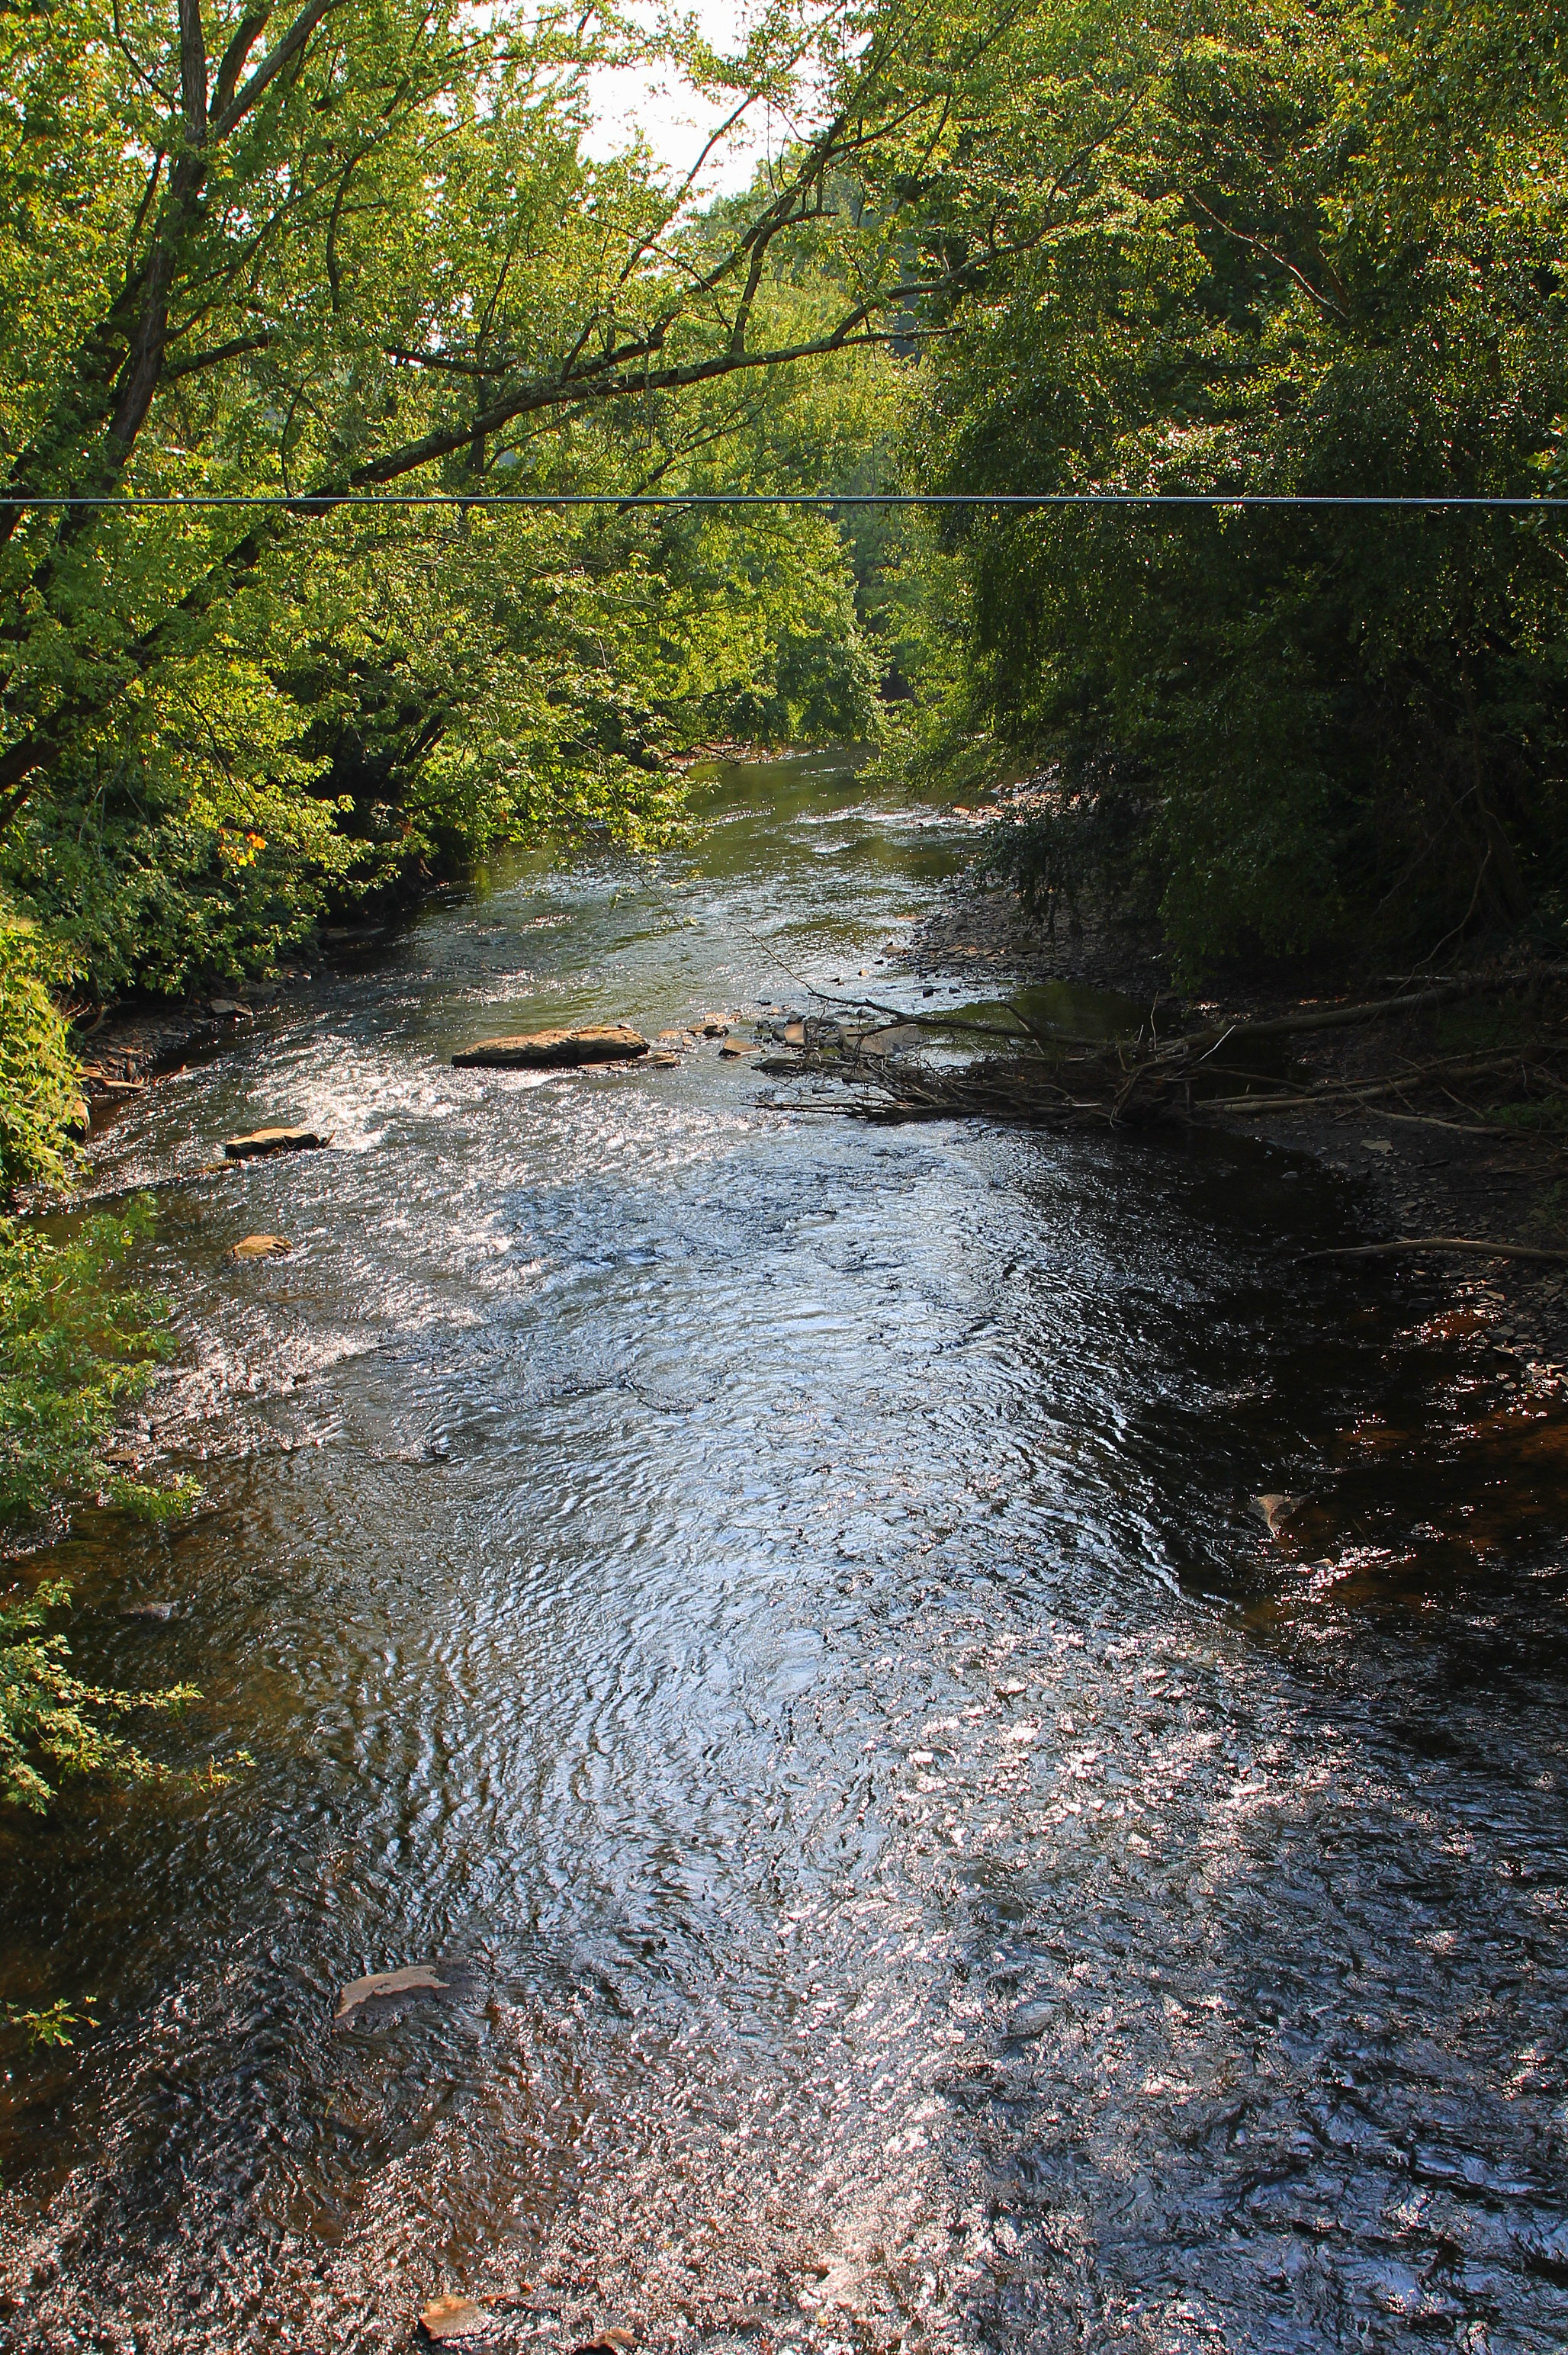 Mahanoy Creek looking downstream, below all its named tributaries